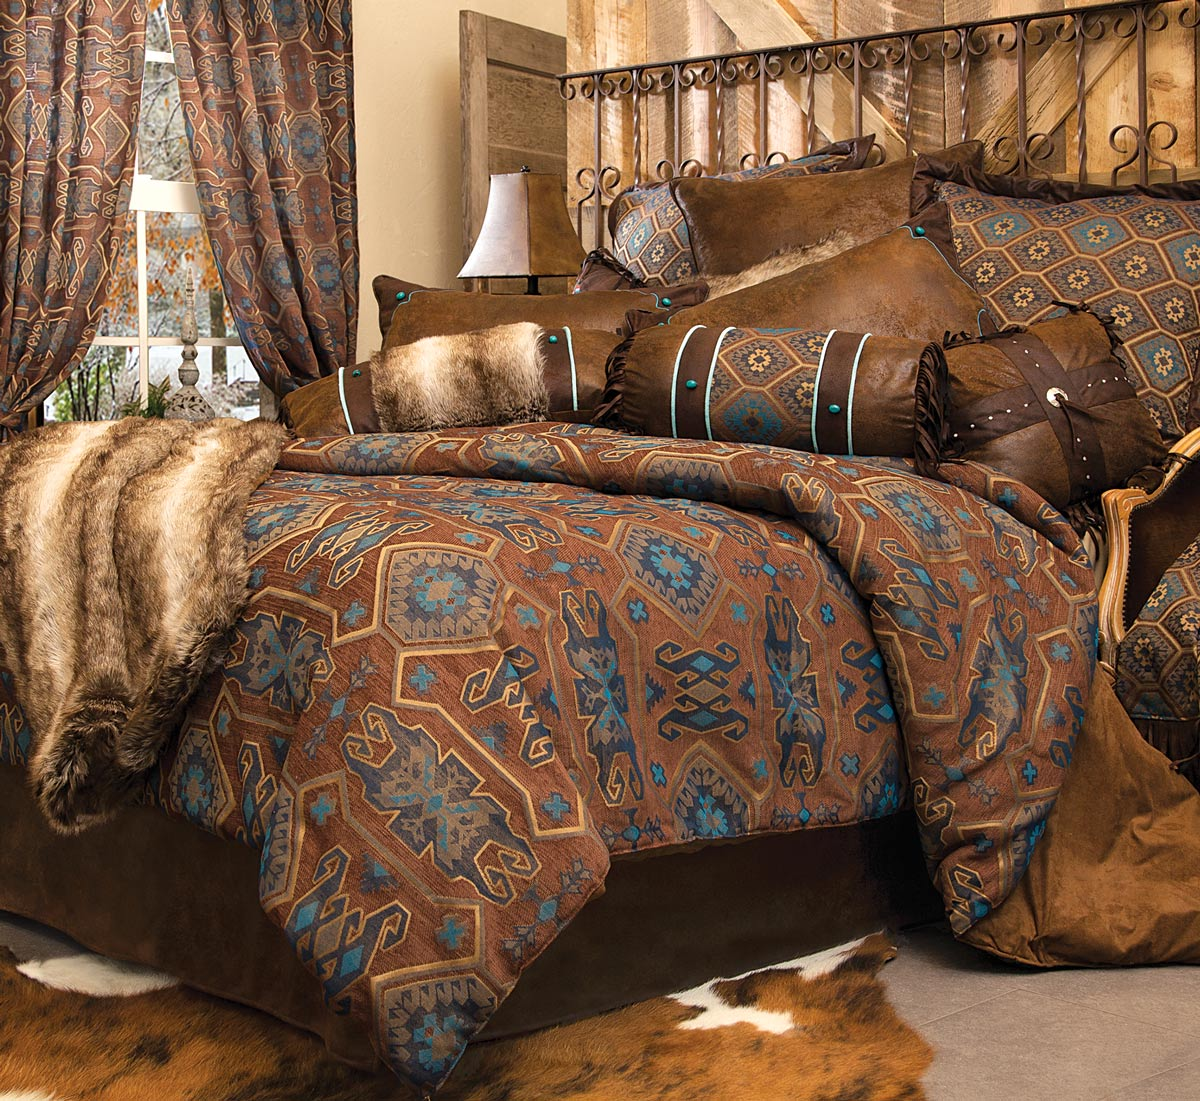 Western King Size Bedding Sets.Rustic Comforter Sets Western Royals Courage Greatest